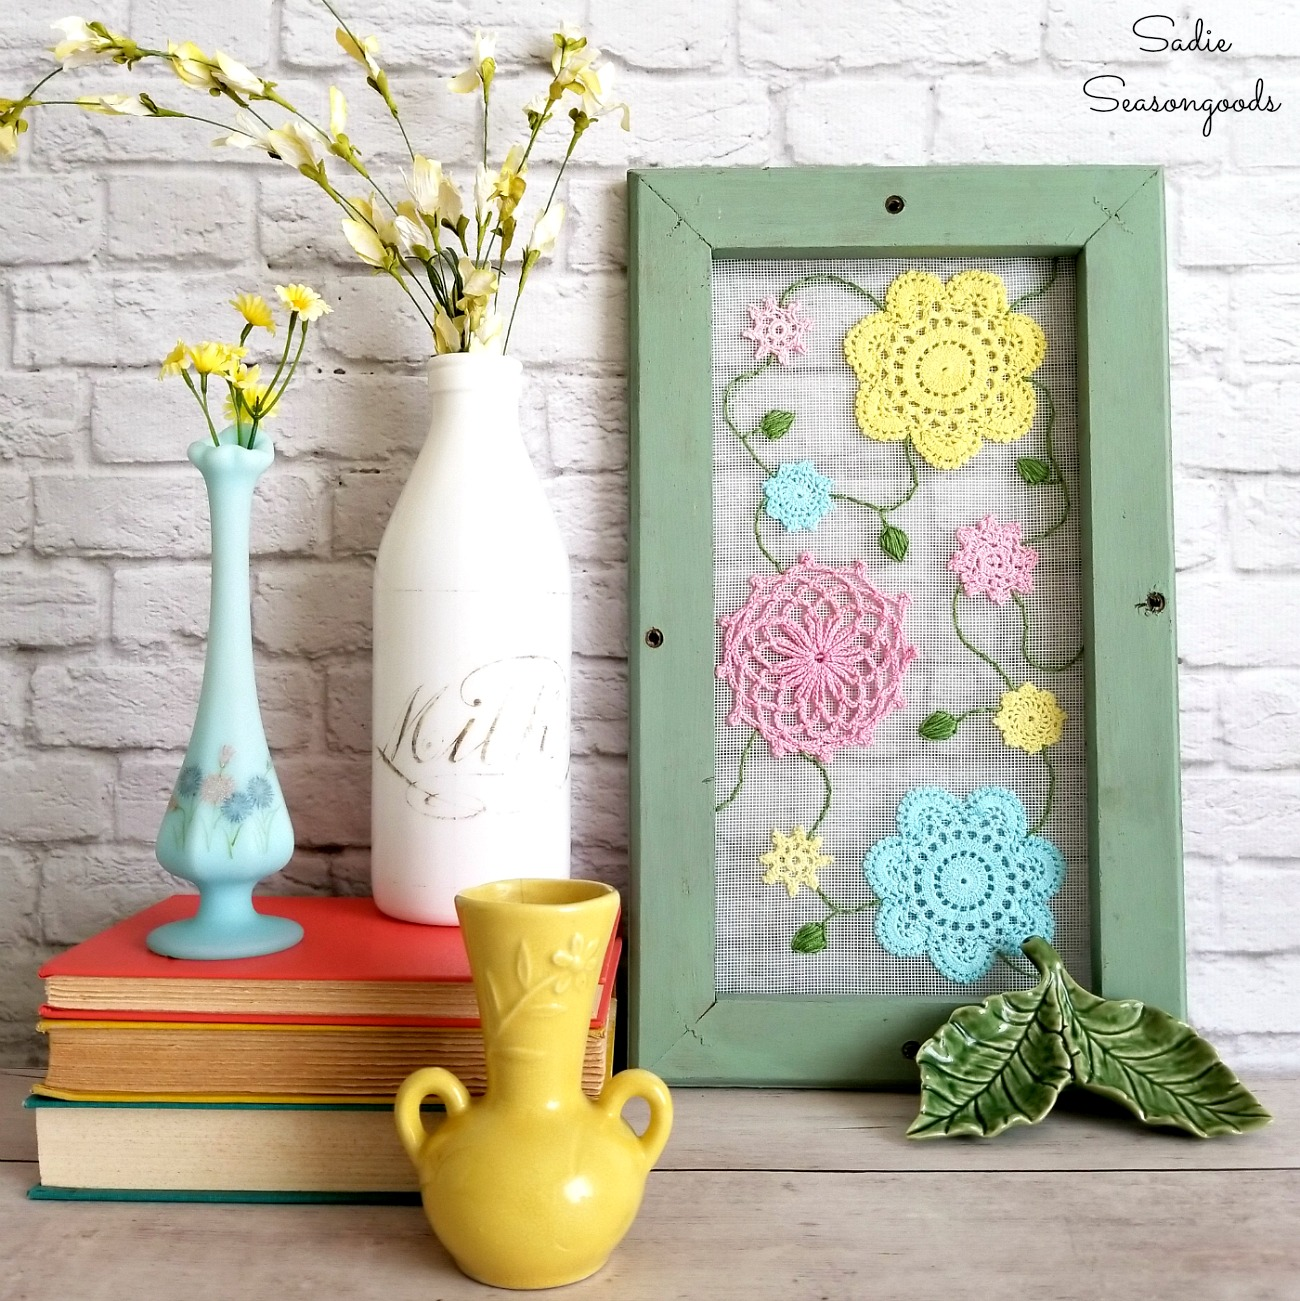 Upcycling Ideas And Repurposing Projects Crafts For Spring Home Decor